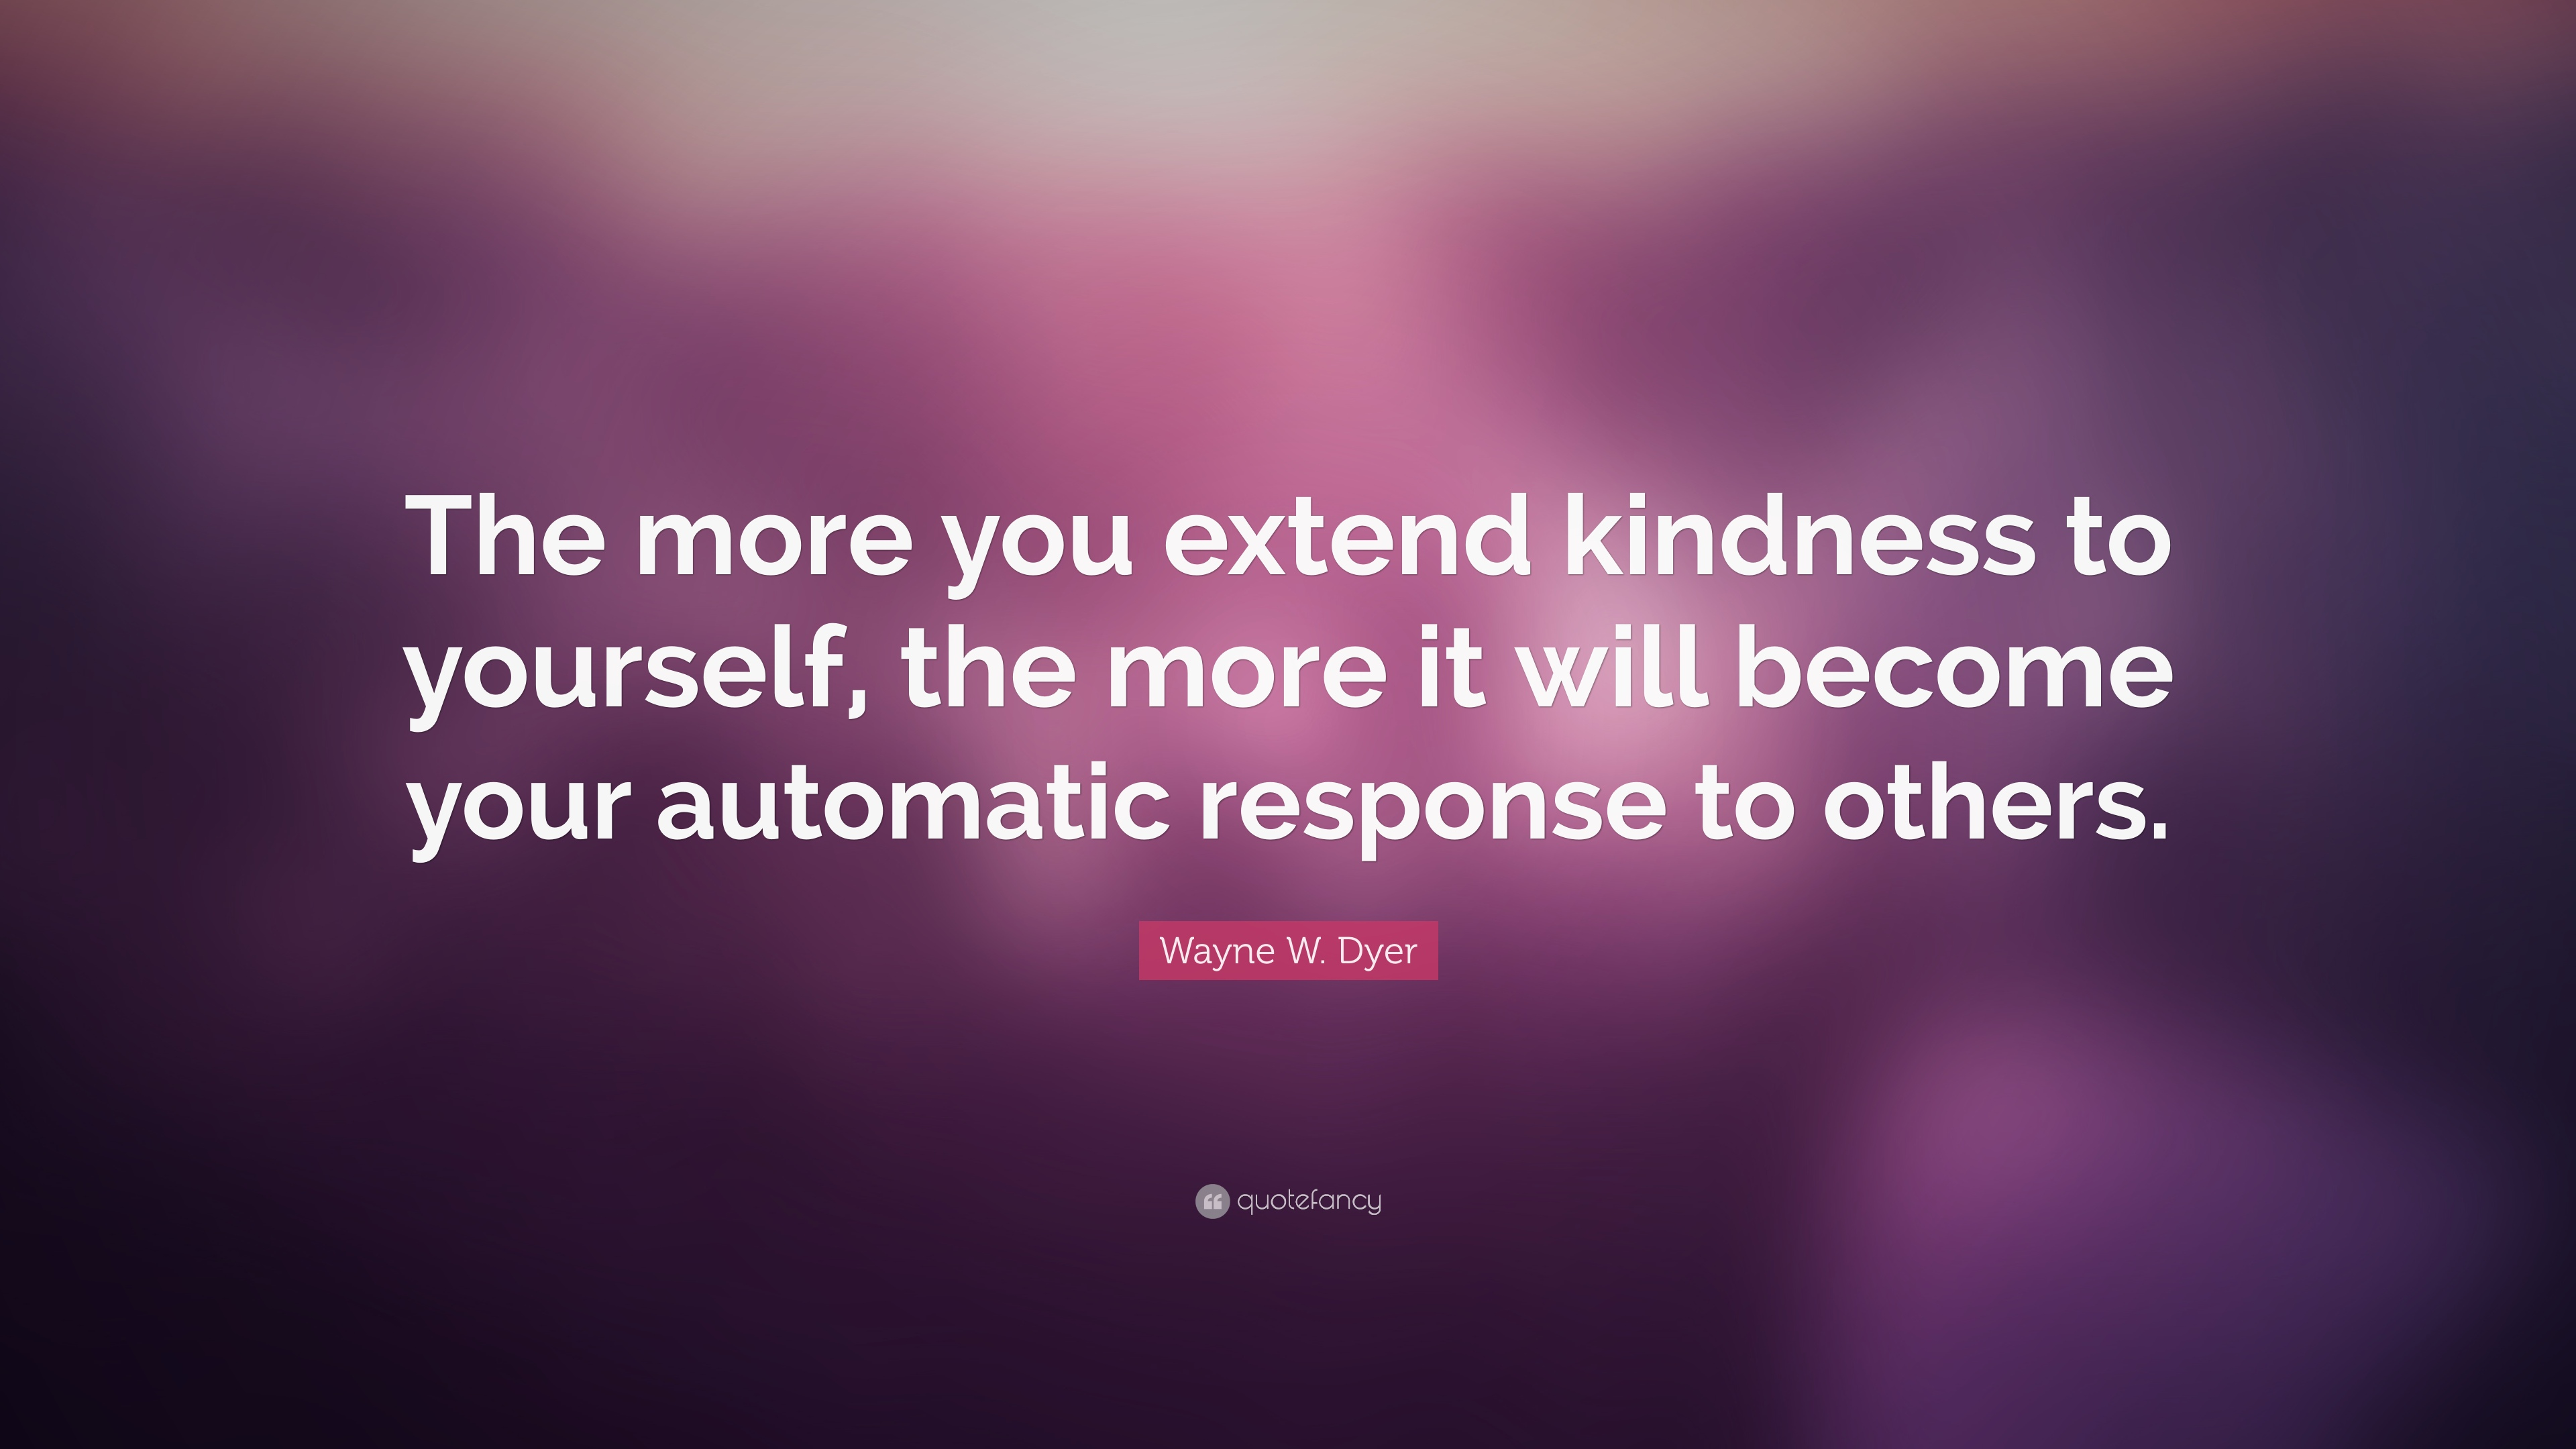 Wayne W Dyer Quote The More You Extend Kindness To Yourself The